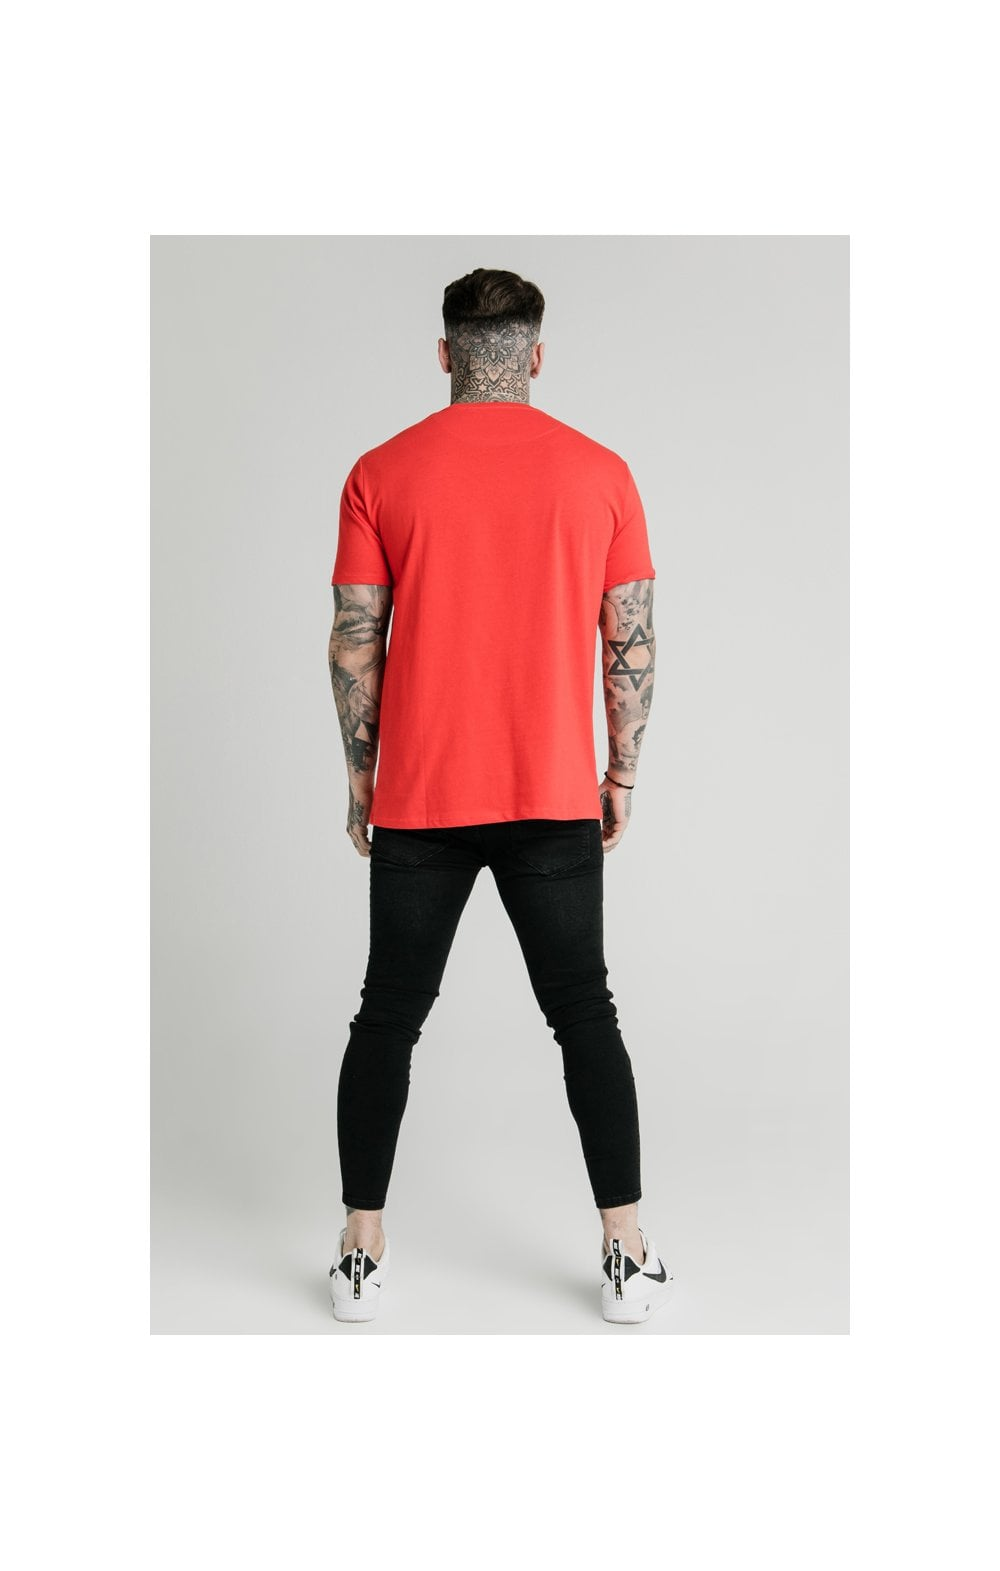 SikSilk x FaZe Apex Standard Square Hem Tee - Red (6)